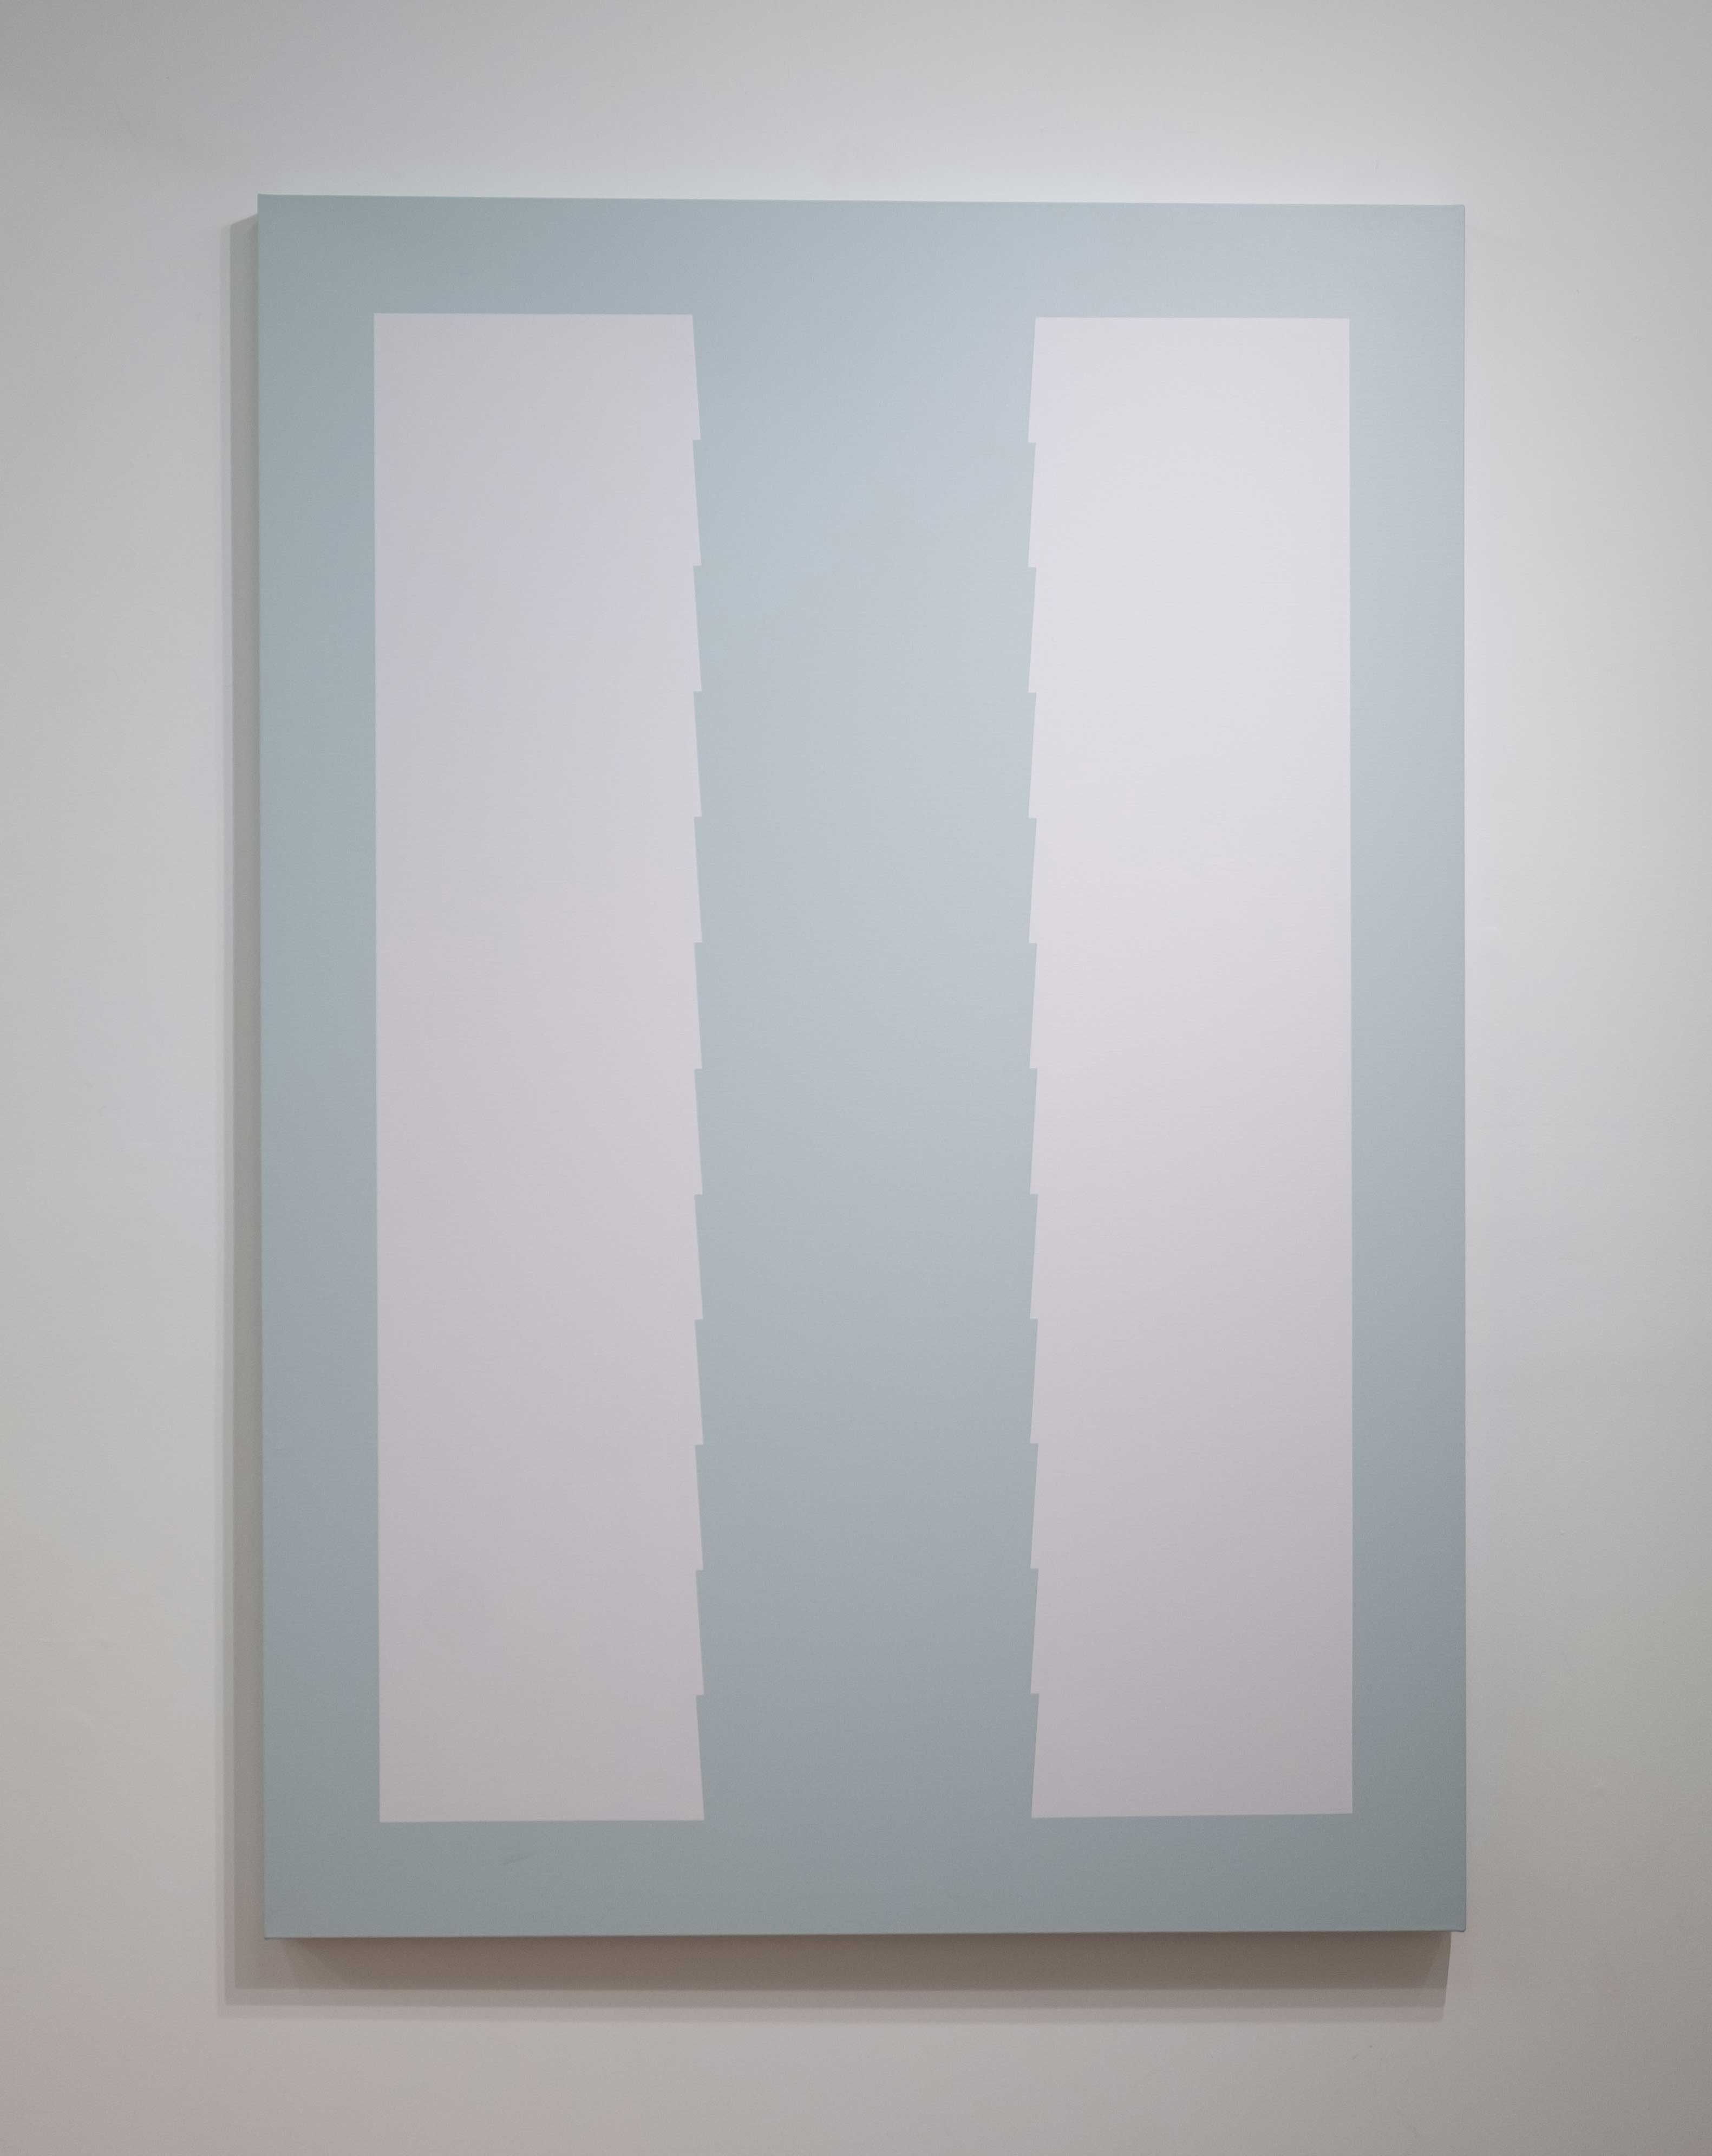 Tess Jaray 2017 Acrylic on cotton duck 70.9 x 49.3 inches (180 x 125.1 cm) 2019 Marc Straus Gallery